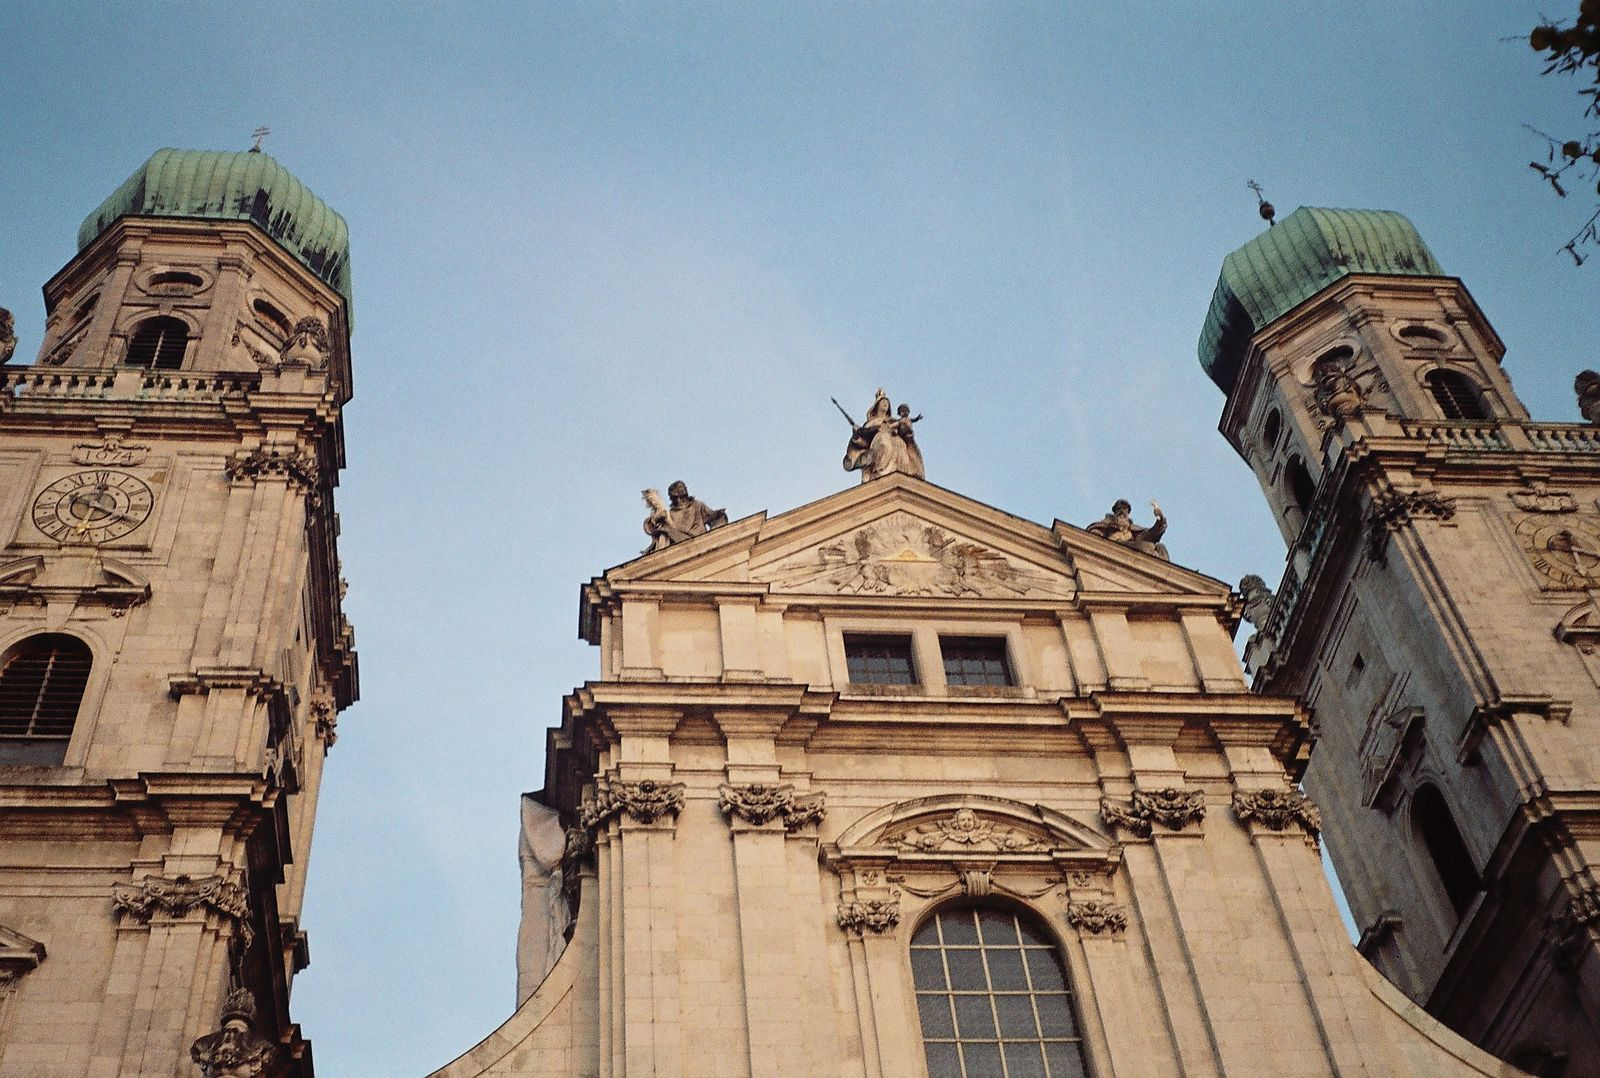 Photo: St. Steven's Cathedral at Passau - With 17974 organ pipes, 233 stops and 4 carillons, the organ in St. Steven's Cathedral is the world's largest cathedral organ.